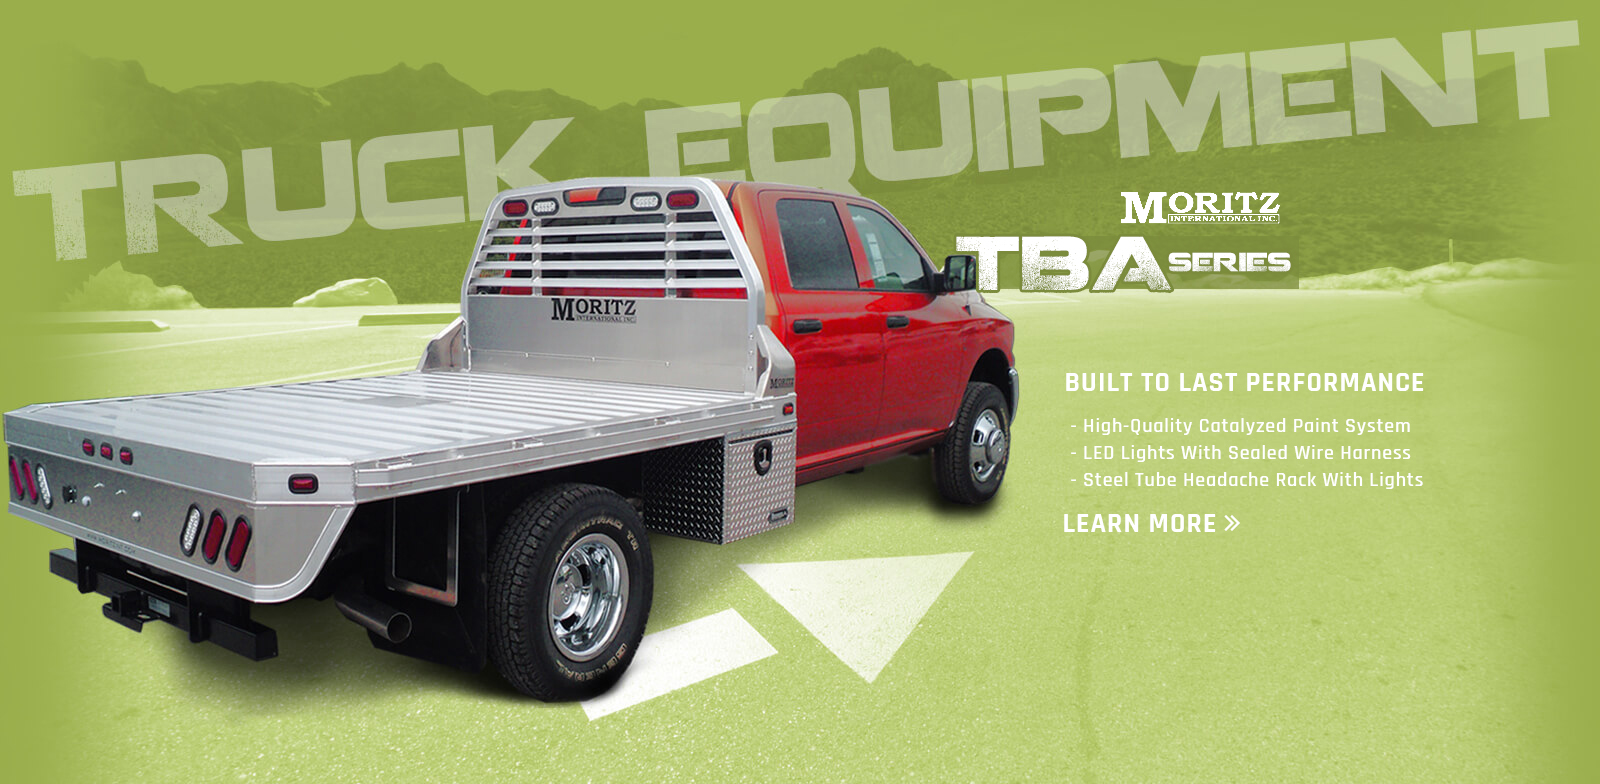 All Truck Equipment | O Reilly Equipment | Flatbed trailers, dump